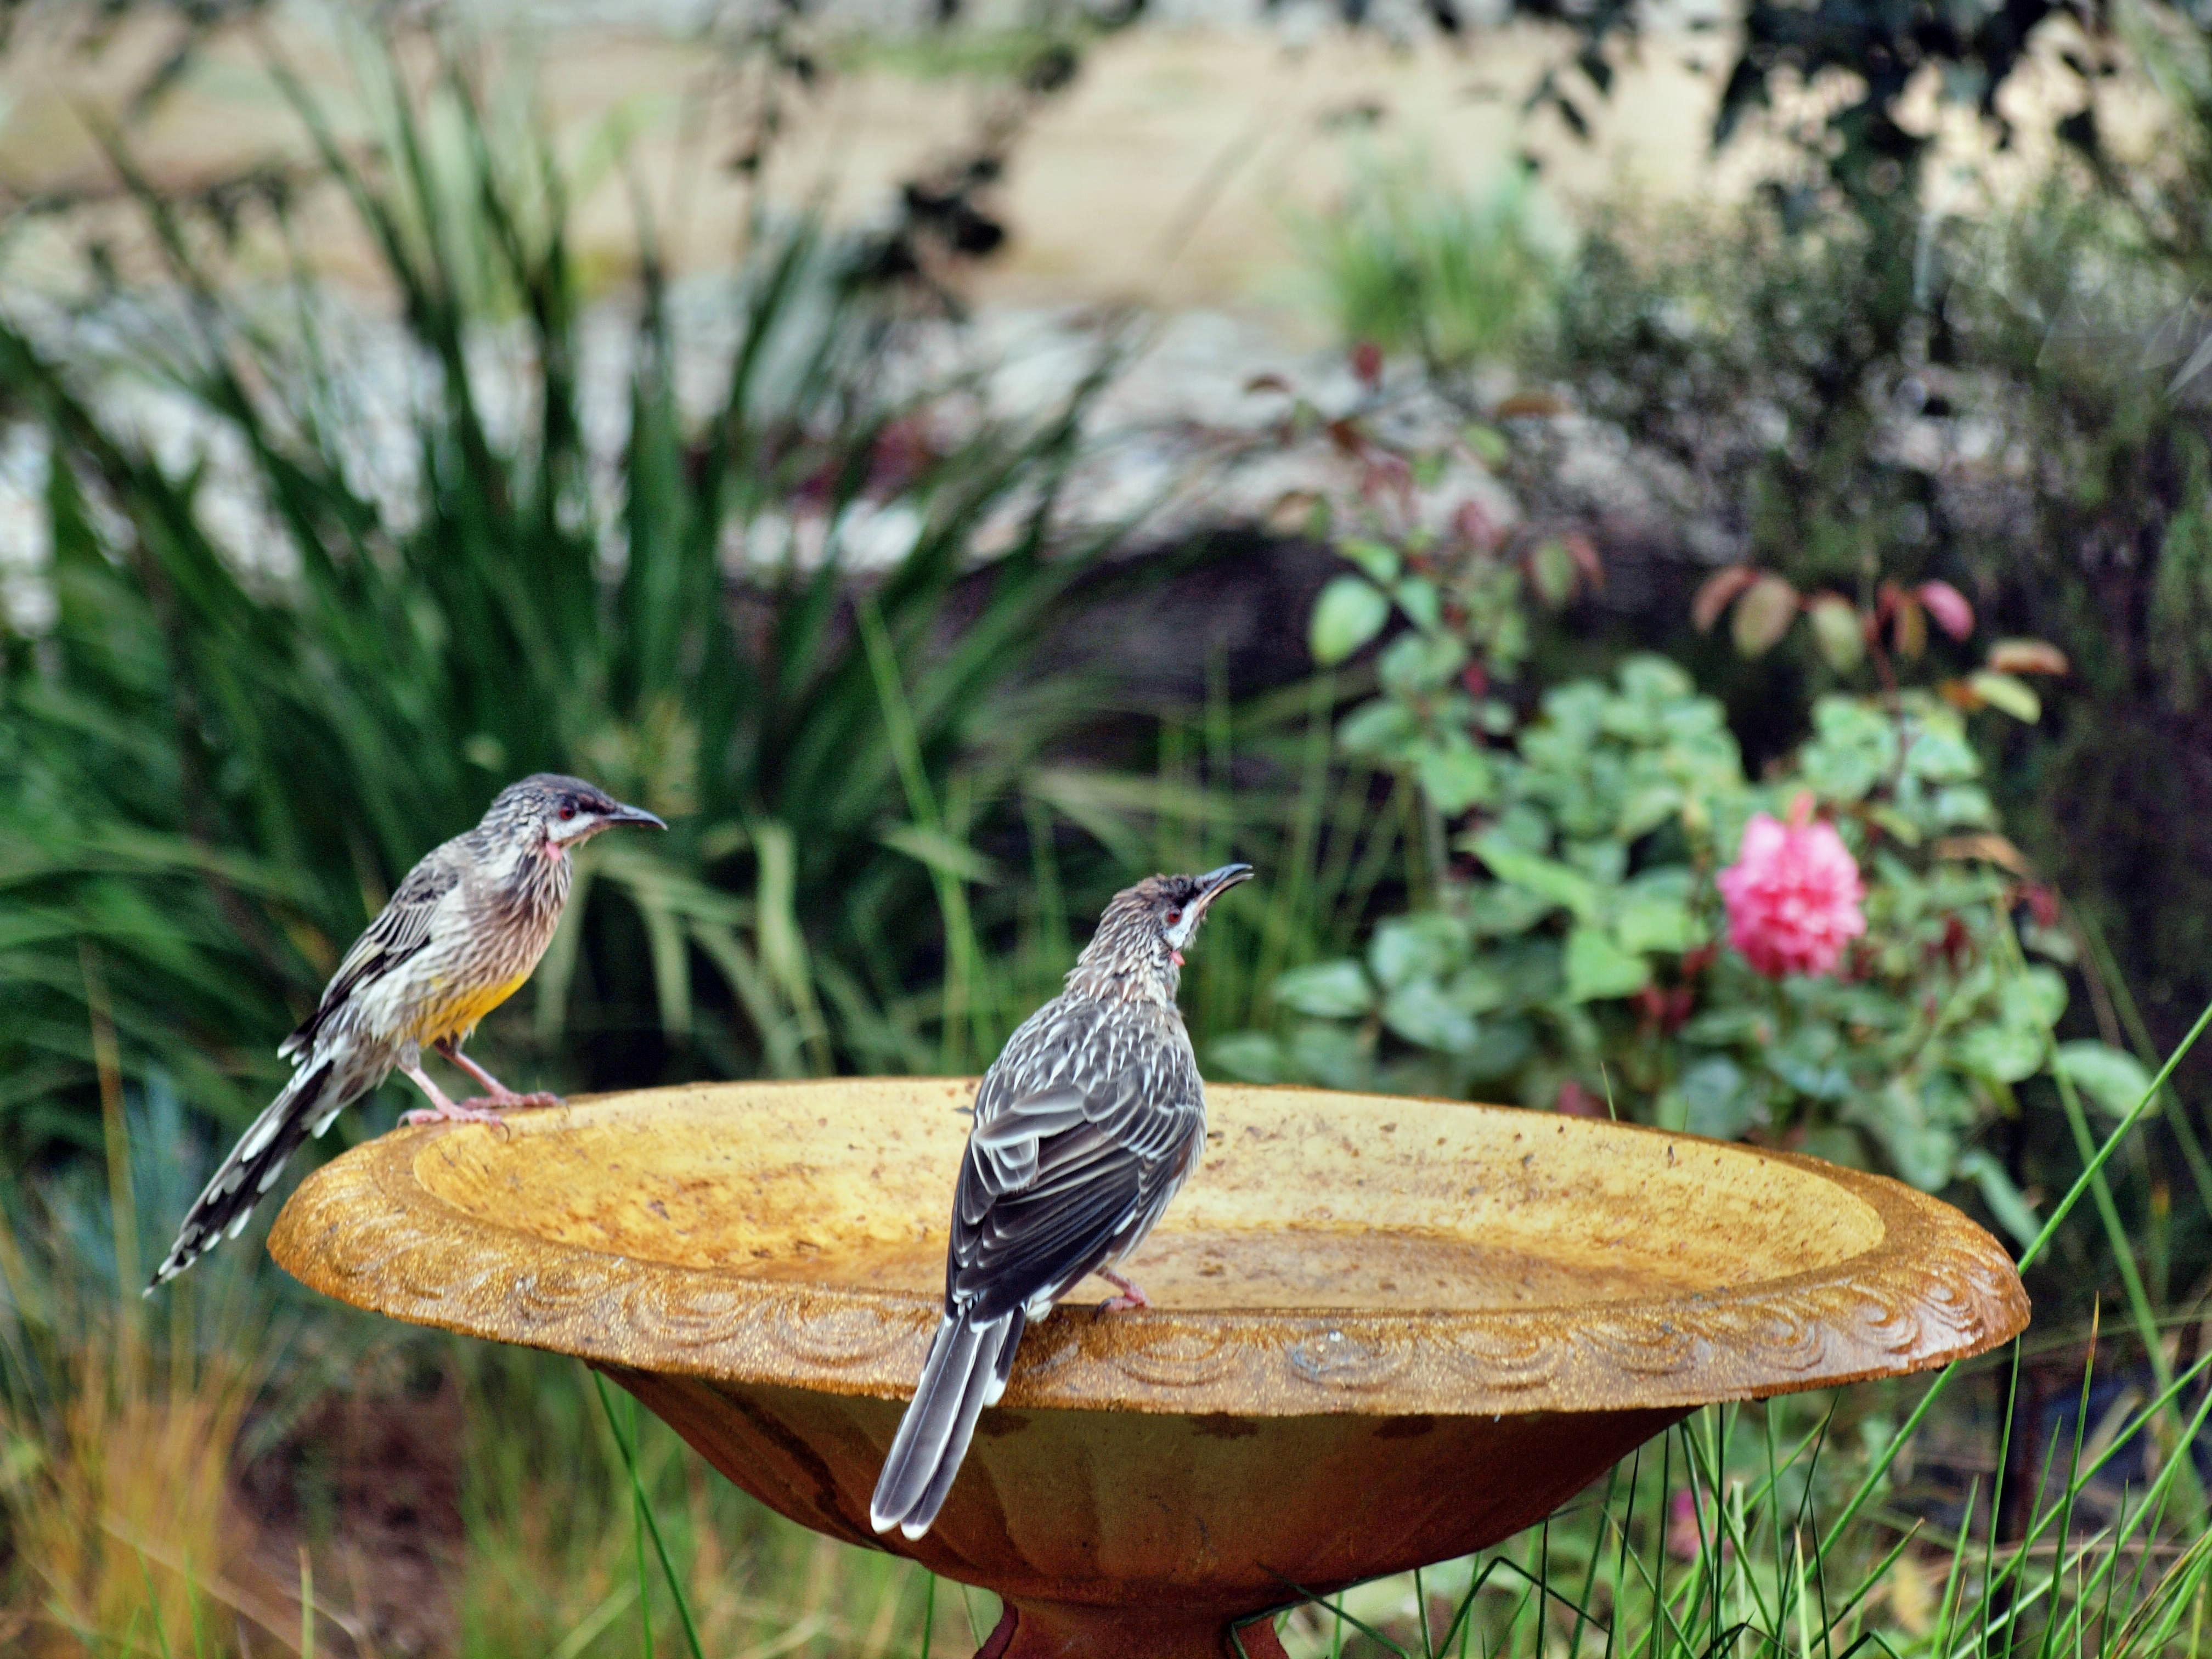 Bird-bath-10.jpeg